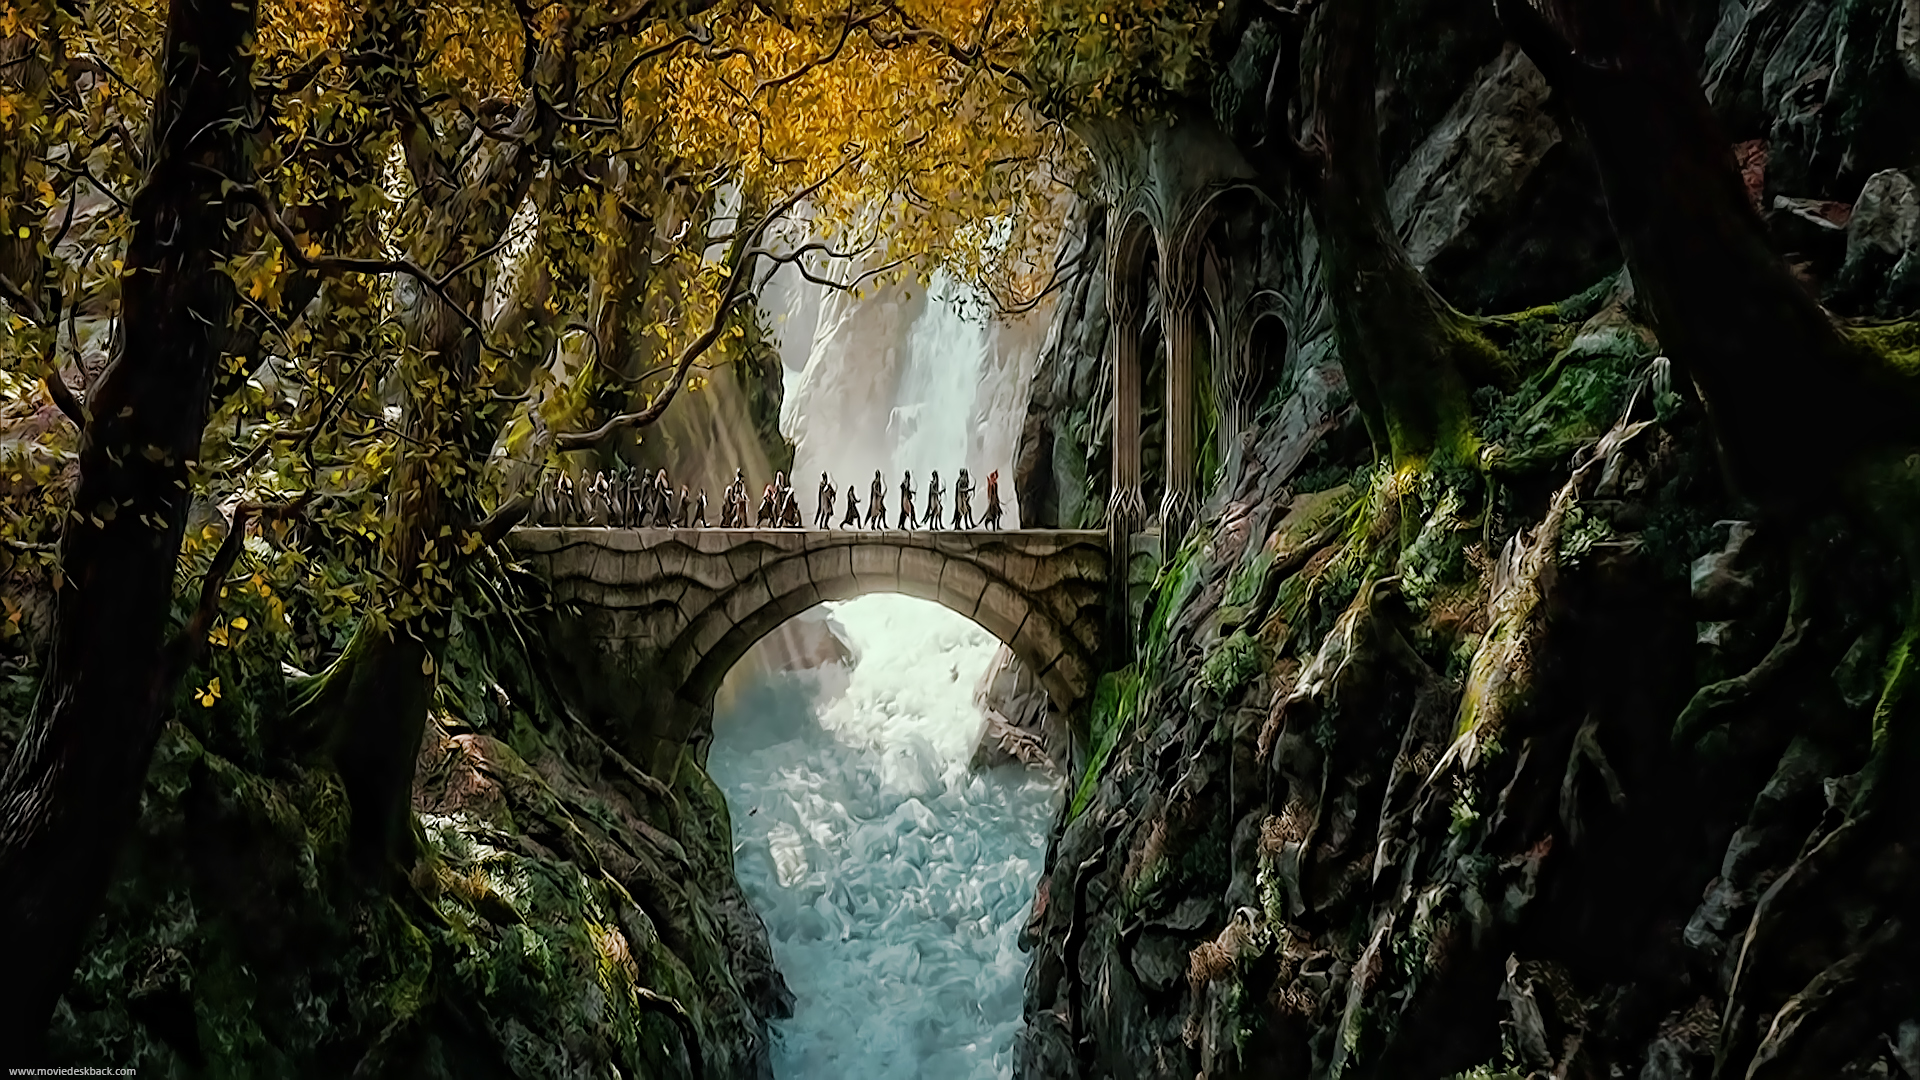 101 The Hobbit The Desolation Of Smaug HD Wallpapers 1920x1080